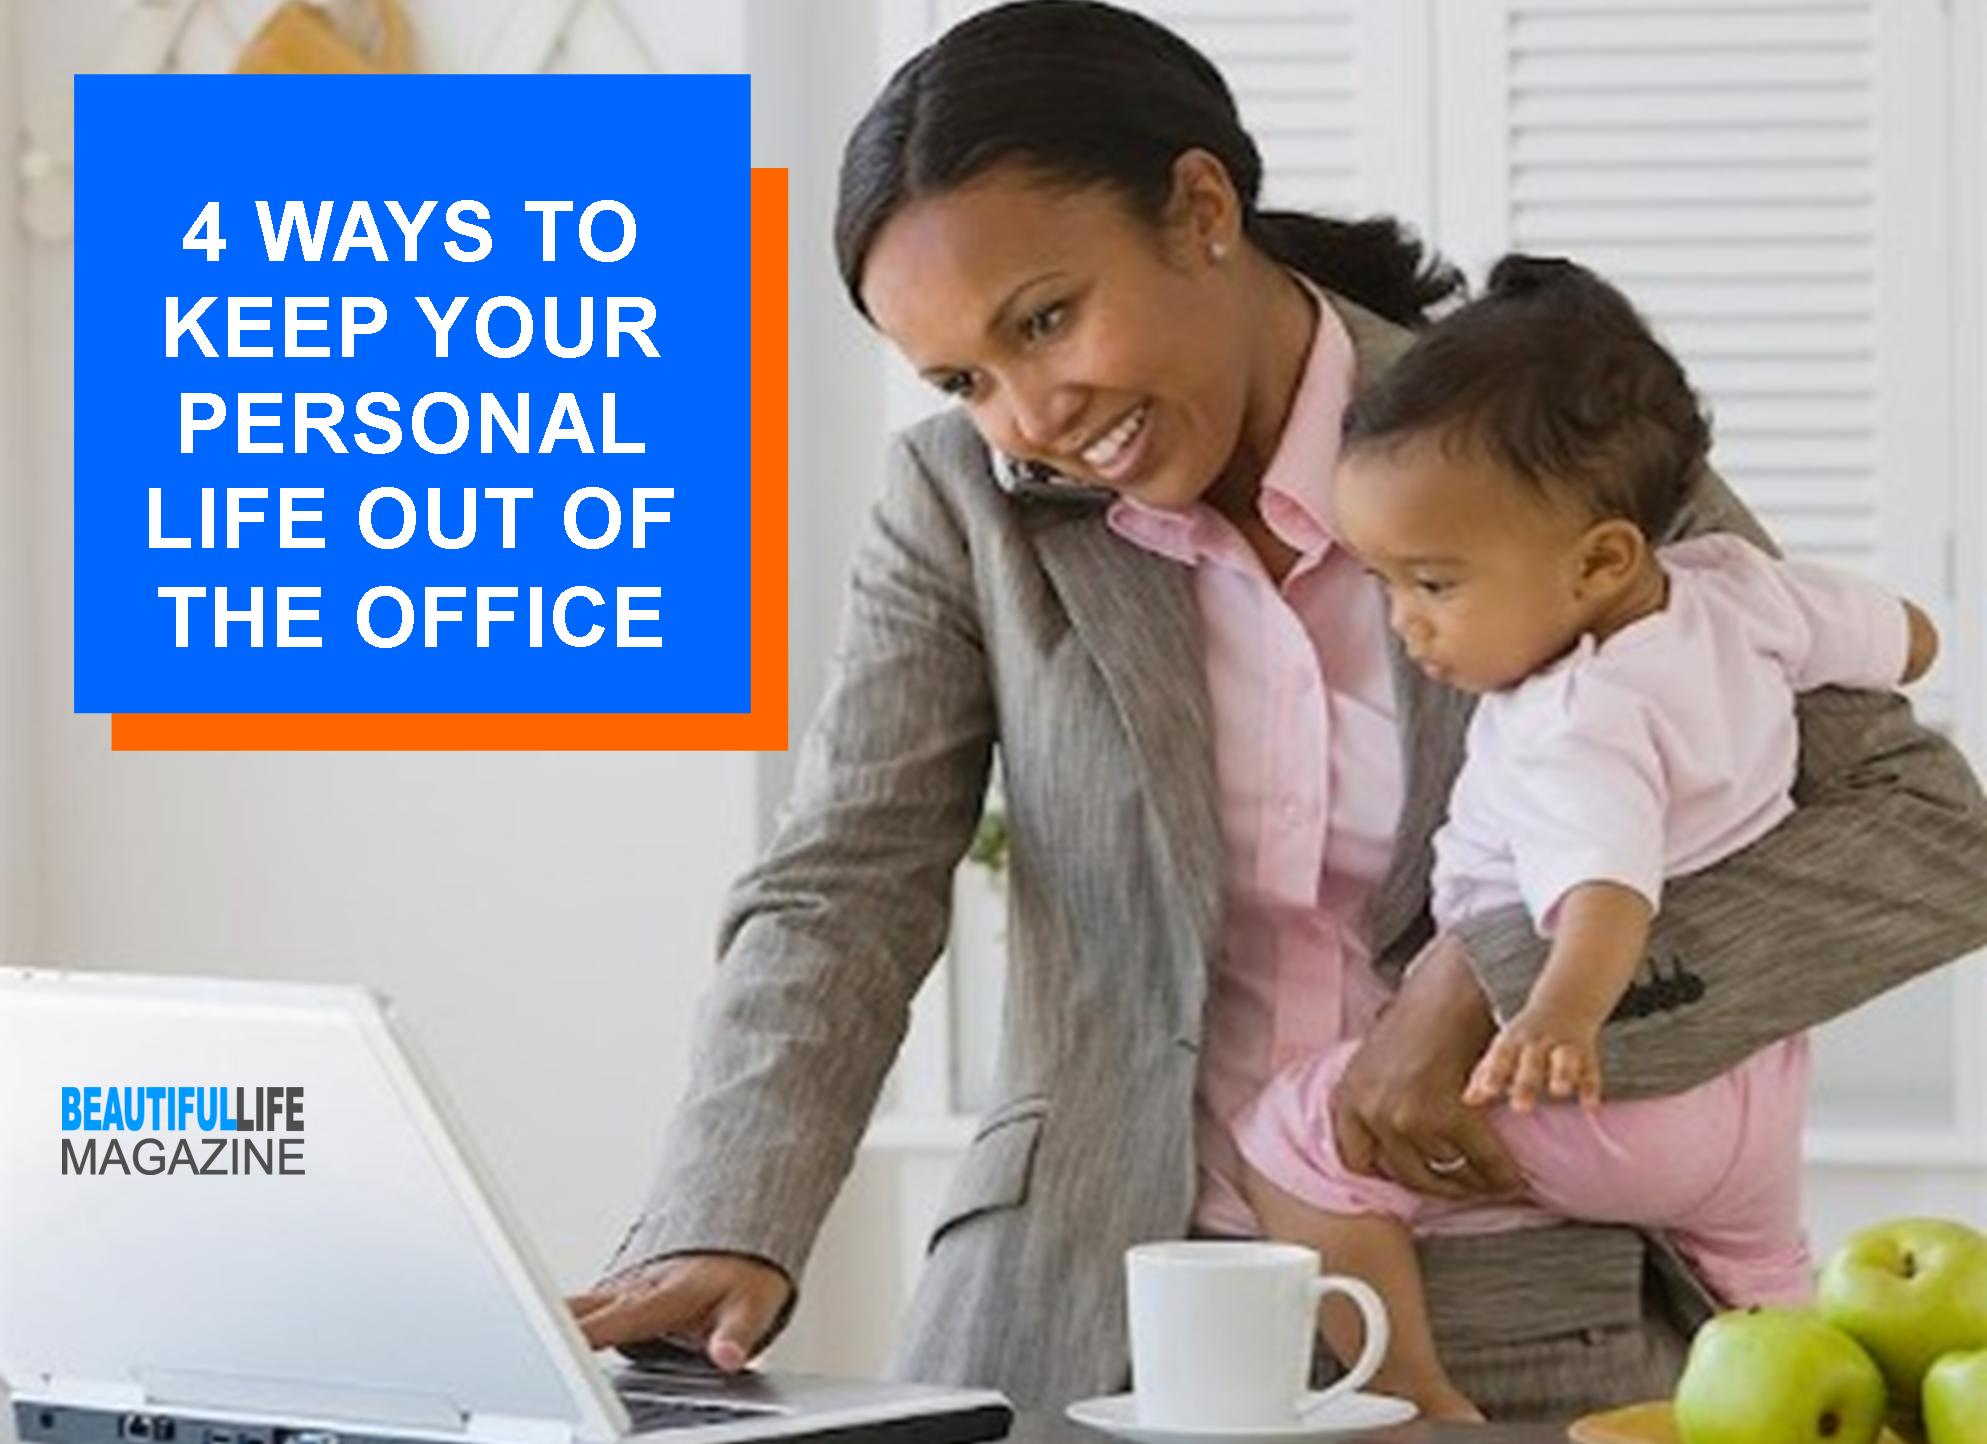 If you've struggled with keeping your personal life out of the office, here are a few tips for maintaining a healthy balance.